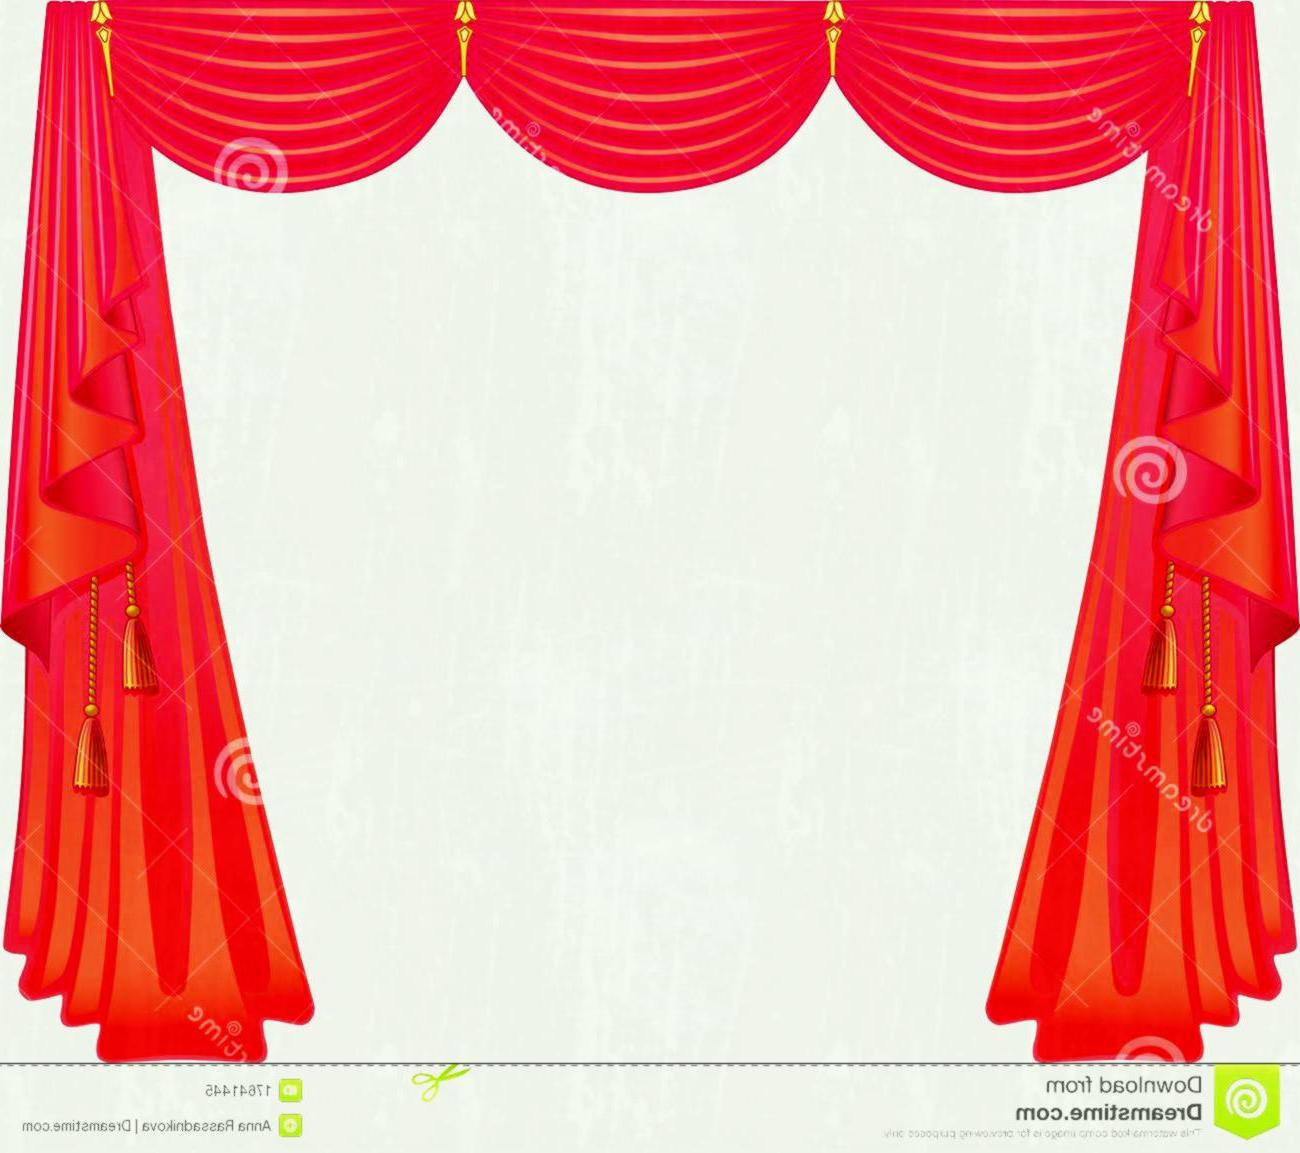 Theatre clipart borders picture library library Top Movie Theater Clip Art Borders File Free » Free Vector ... picture library library